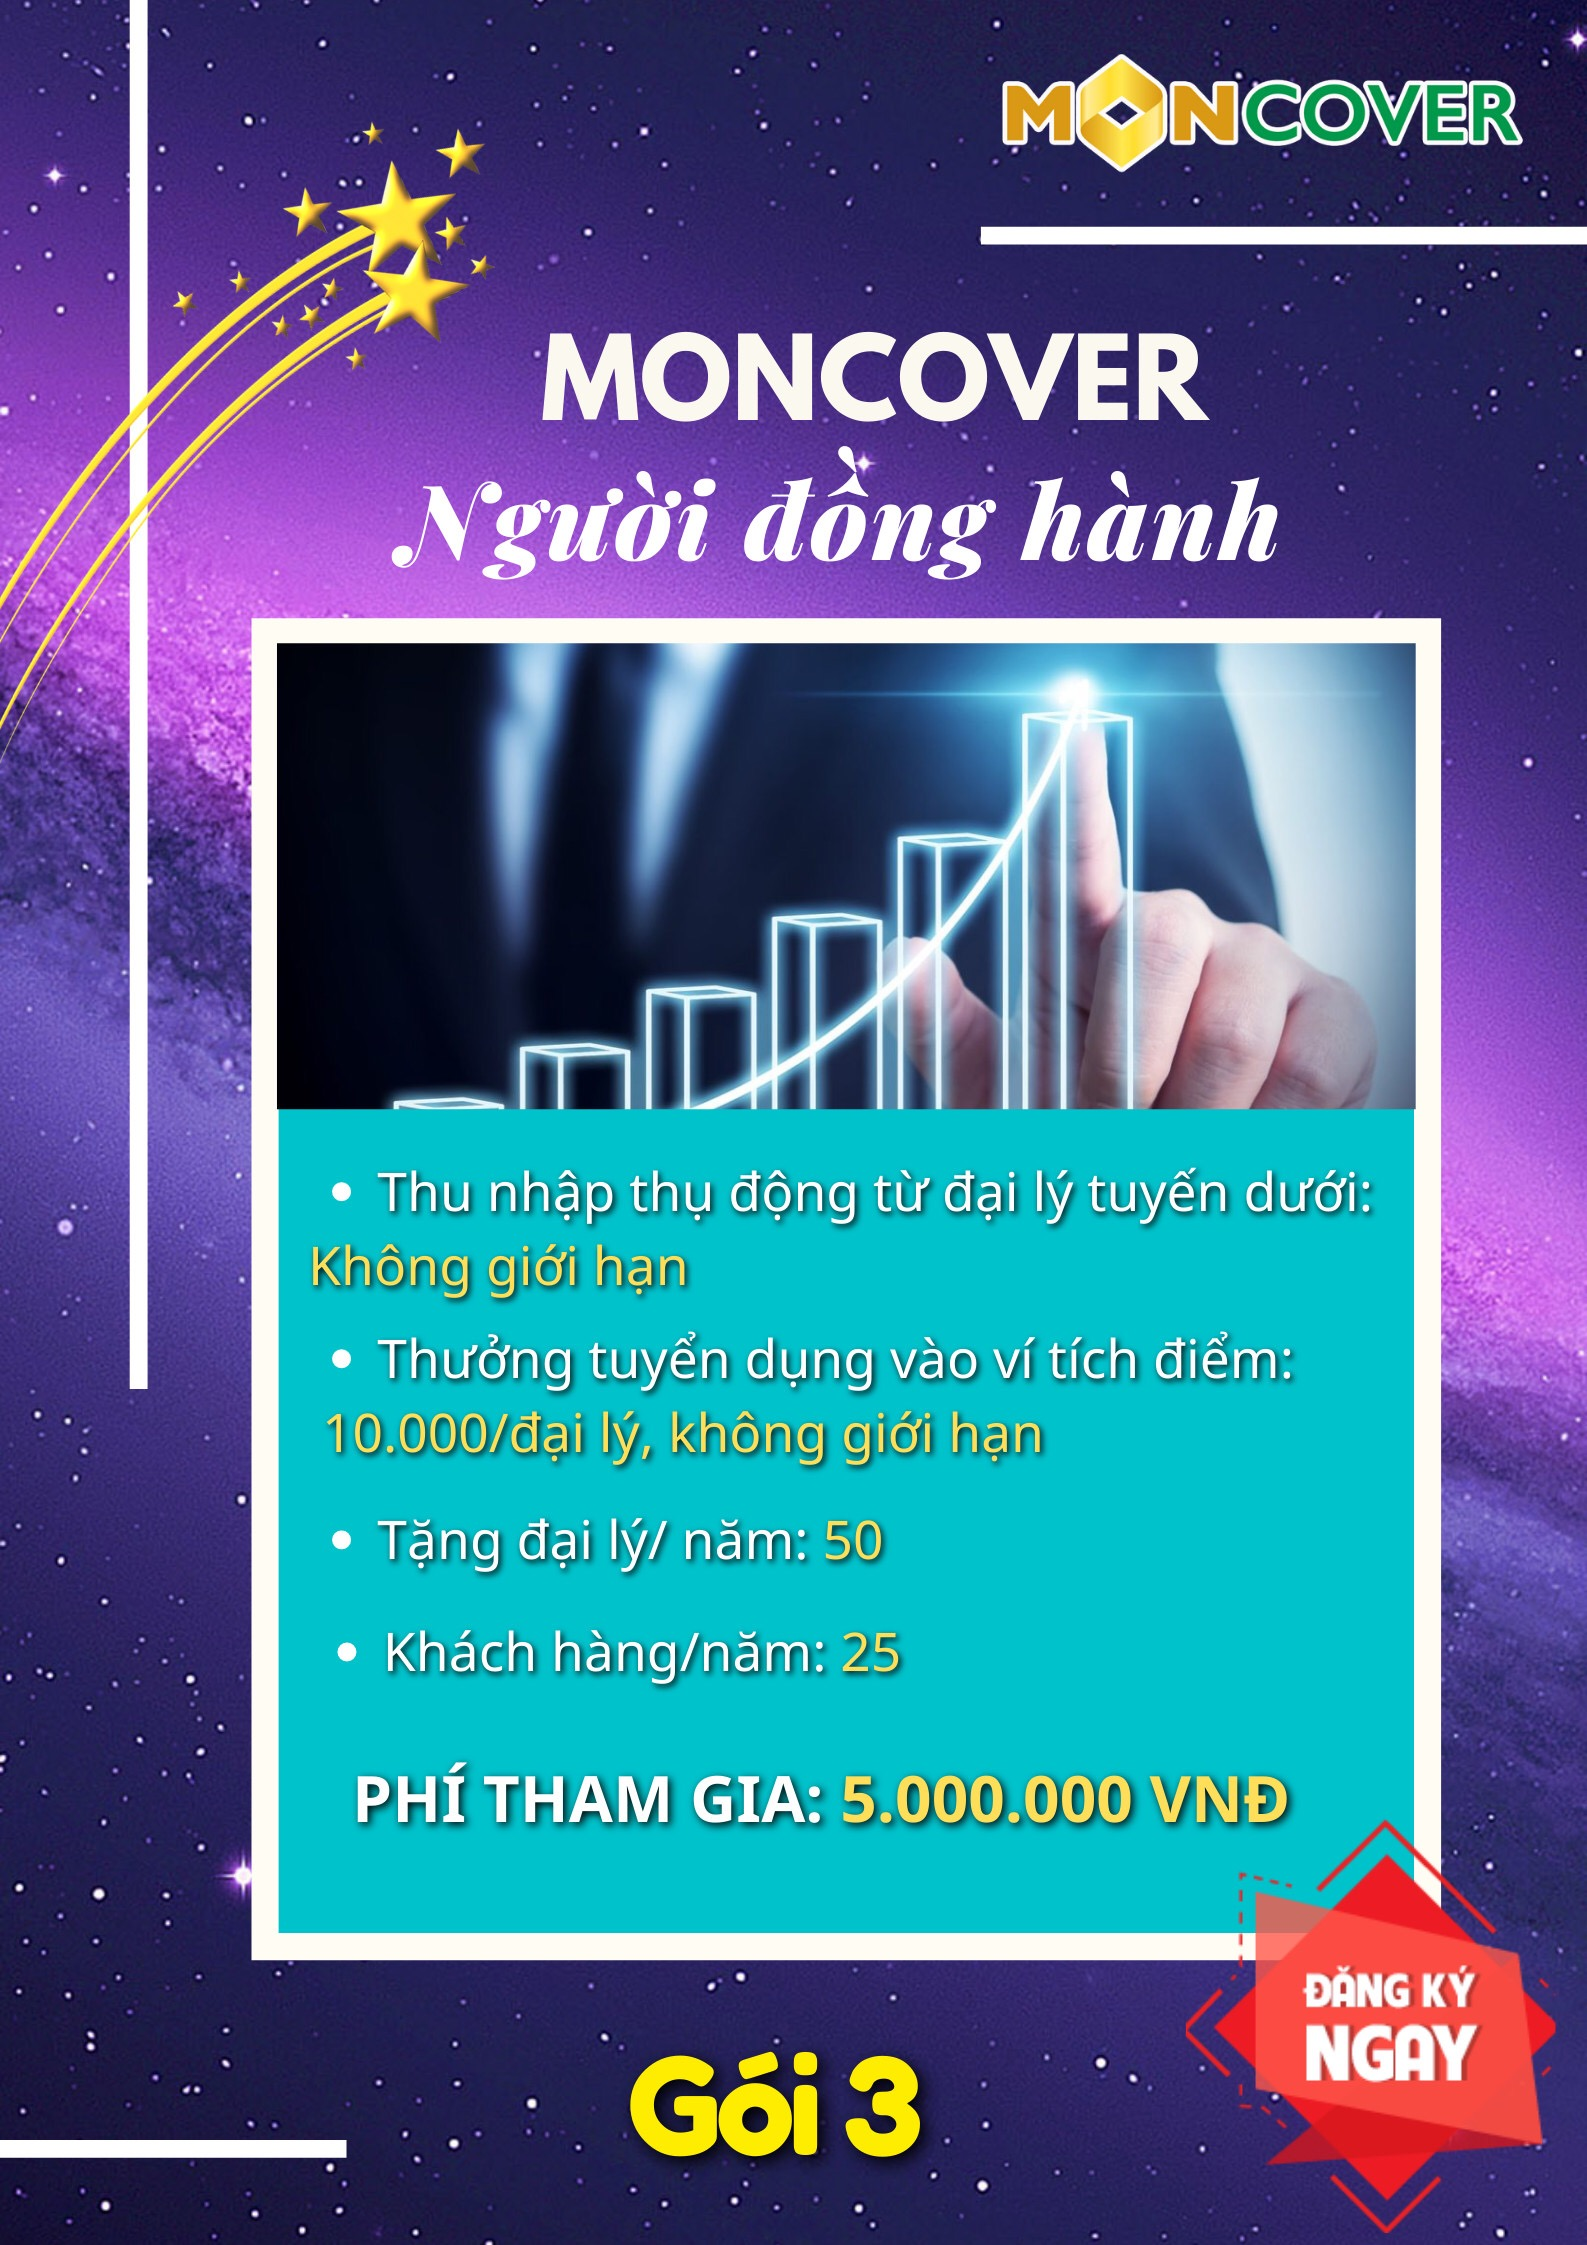 nguoi dong hanh moncover